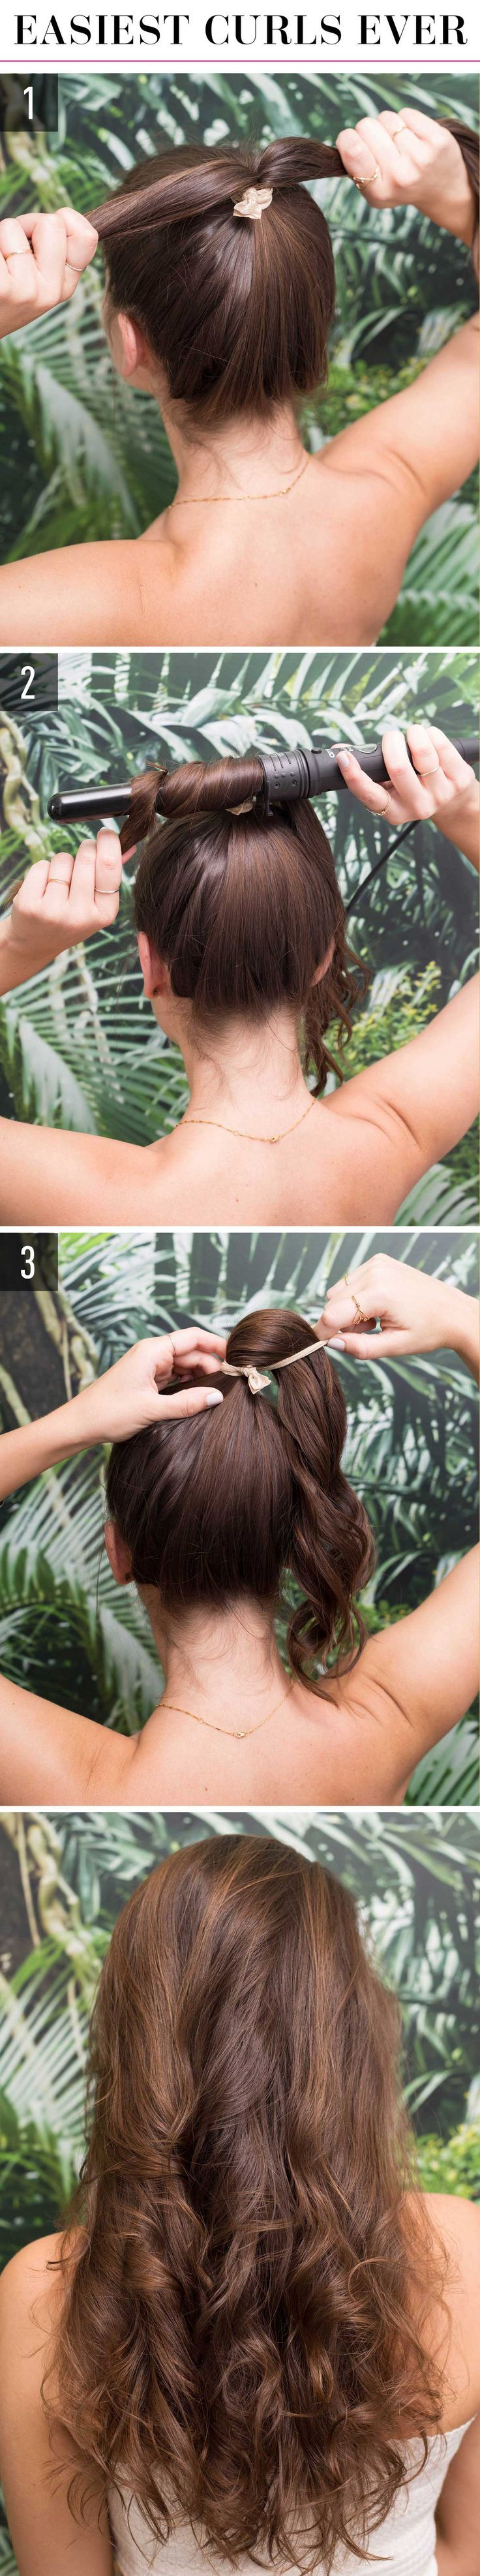 1.Secure your hair in a high pony and split the tail in half. 2.Wrap the first half over and around a 1-inch curling wand for 10 seconds or less, depending on how easily your hair curls. Repeat with the second half. 3.Let down your ponytail and separate the curls with your fingers.